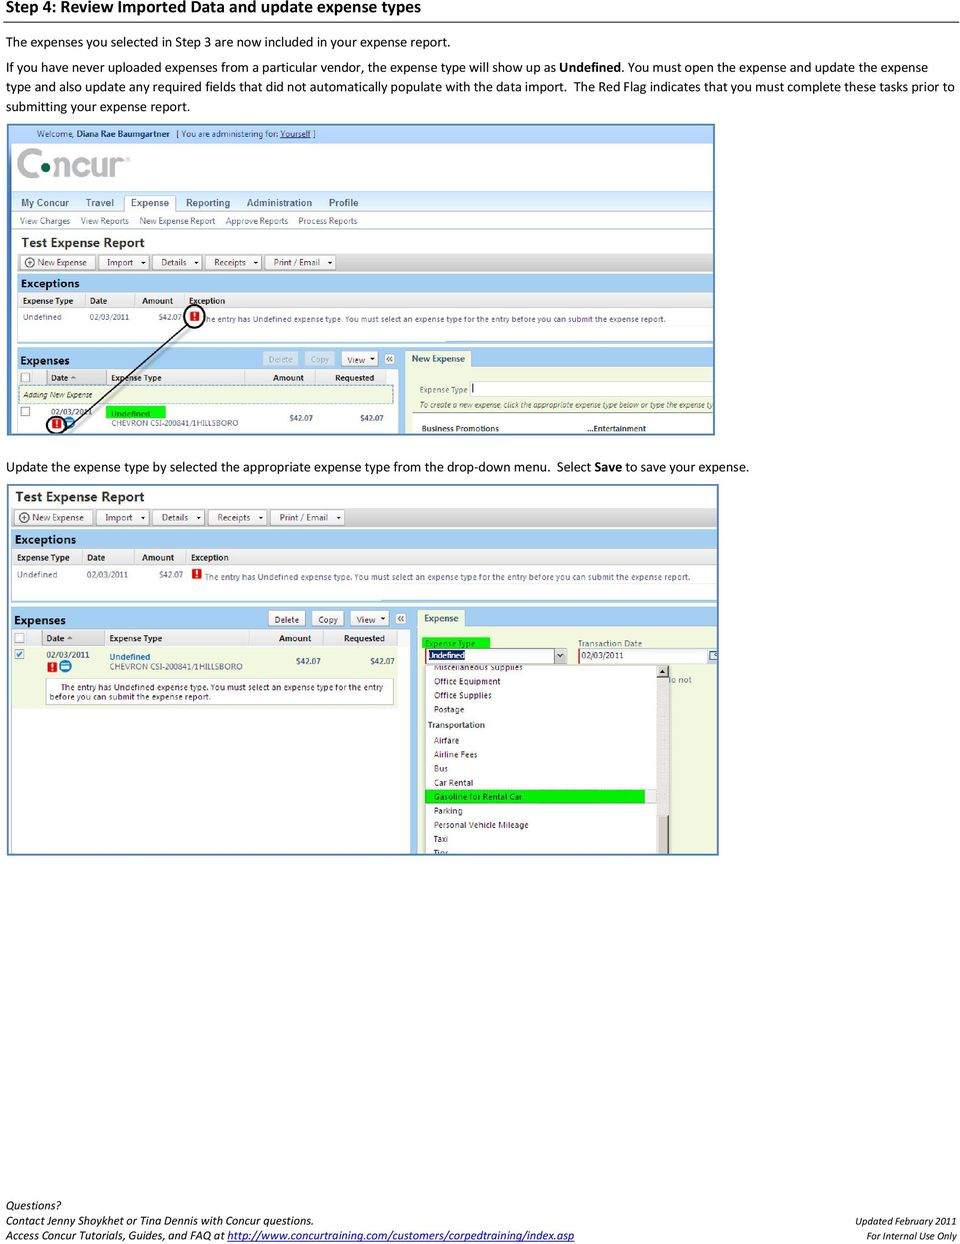 Importing Credit Card Expenses into Concur - PDF